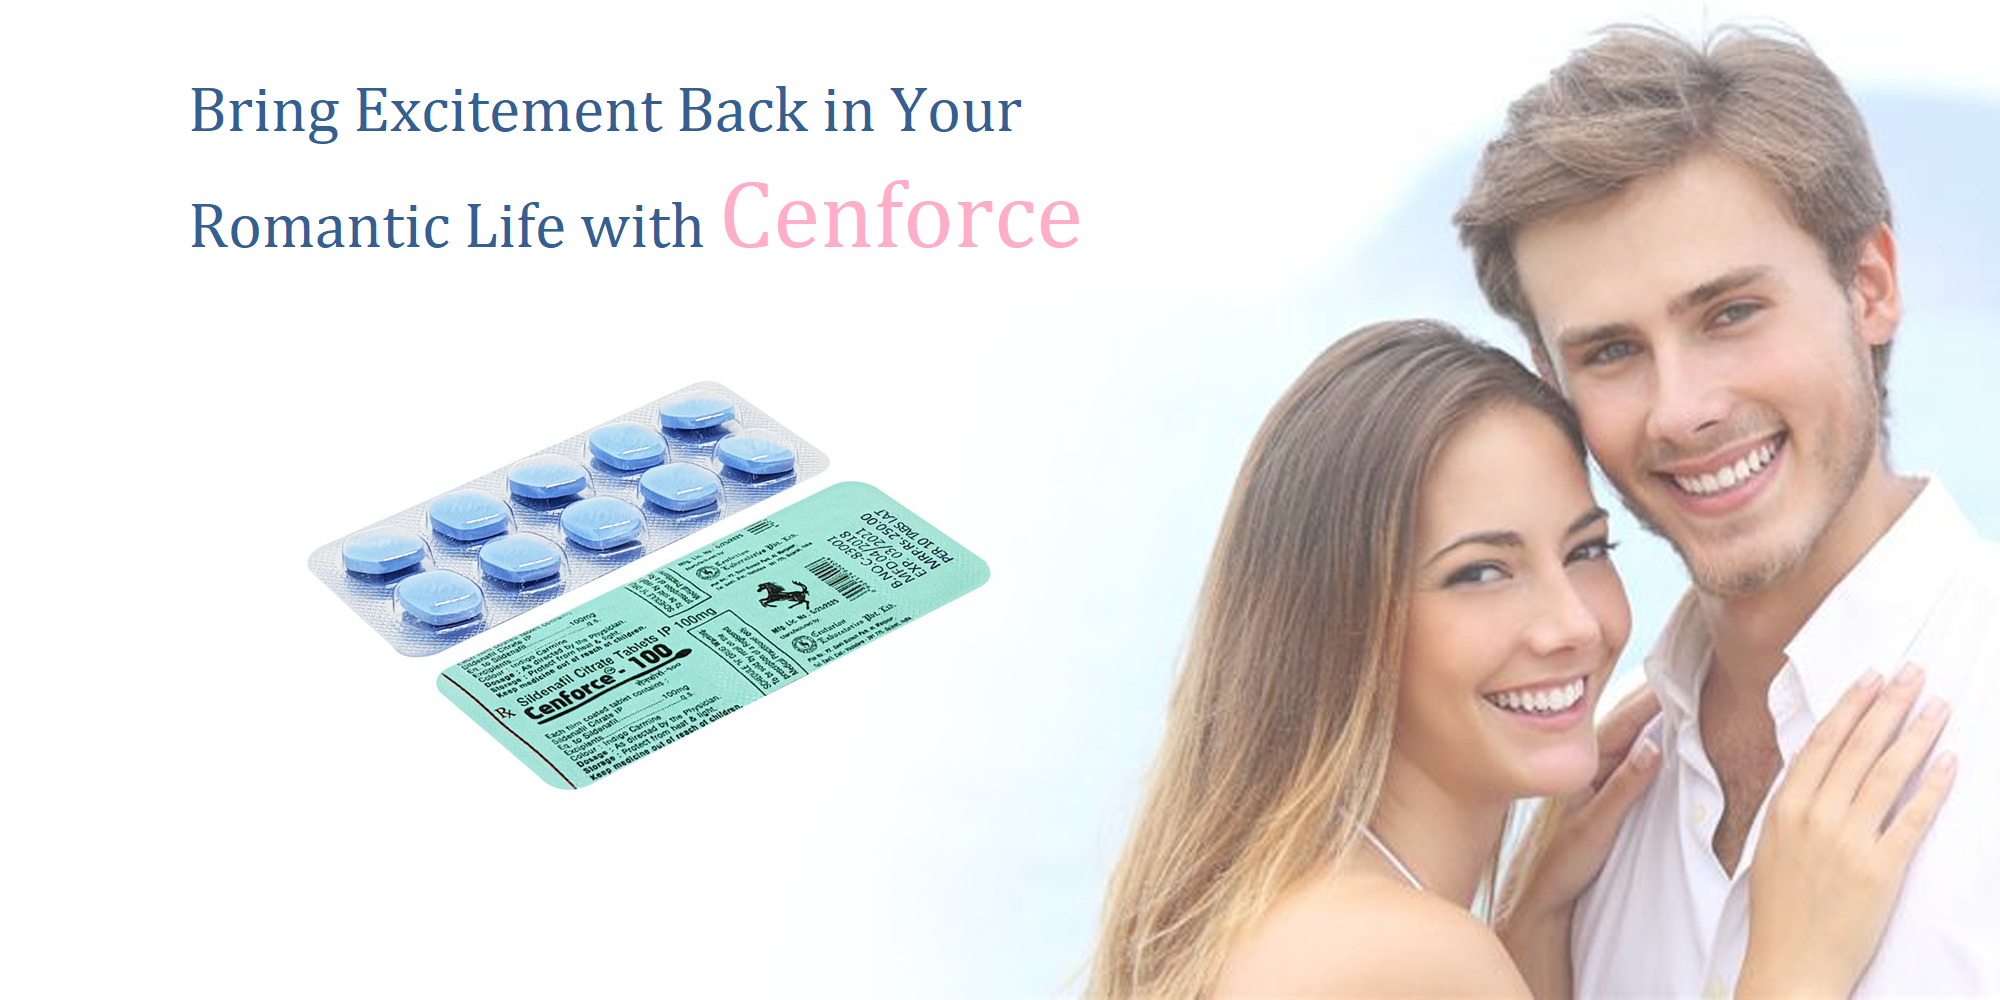 Bring Excitement Back in Your Romantic Life with Cenforce